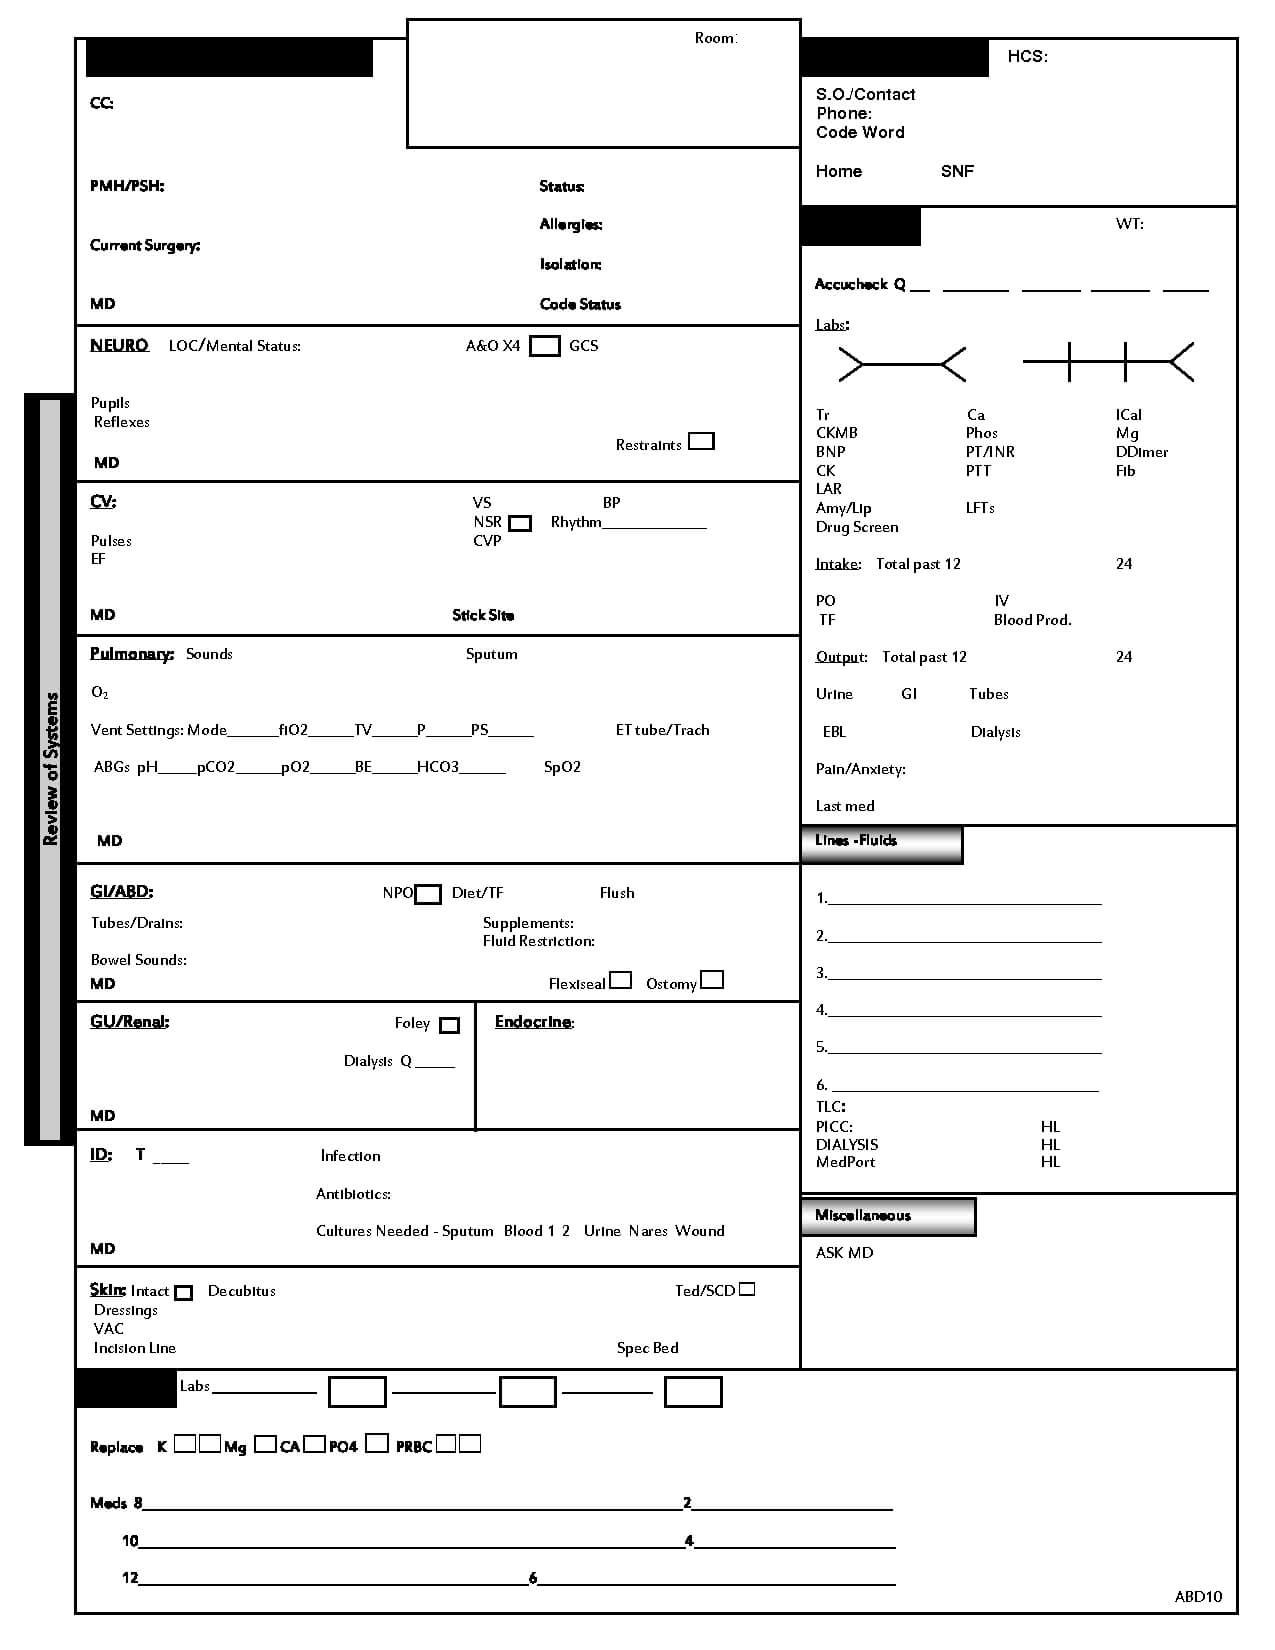 Icu Nurse Report Sheet Template | Nurse | Nurse Report Sheet Within Icu Report Template